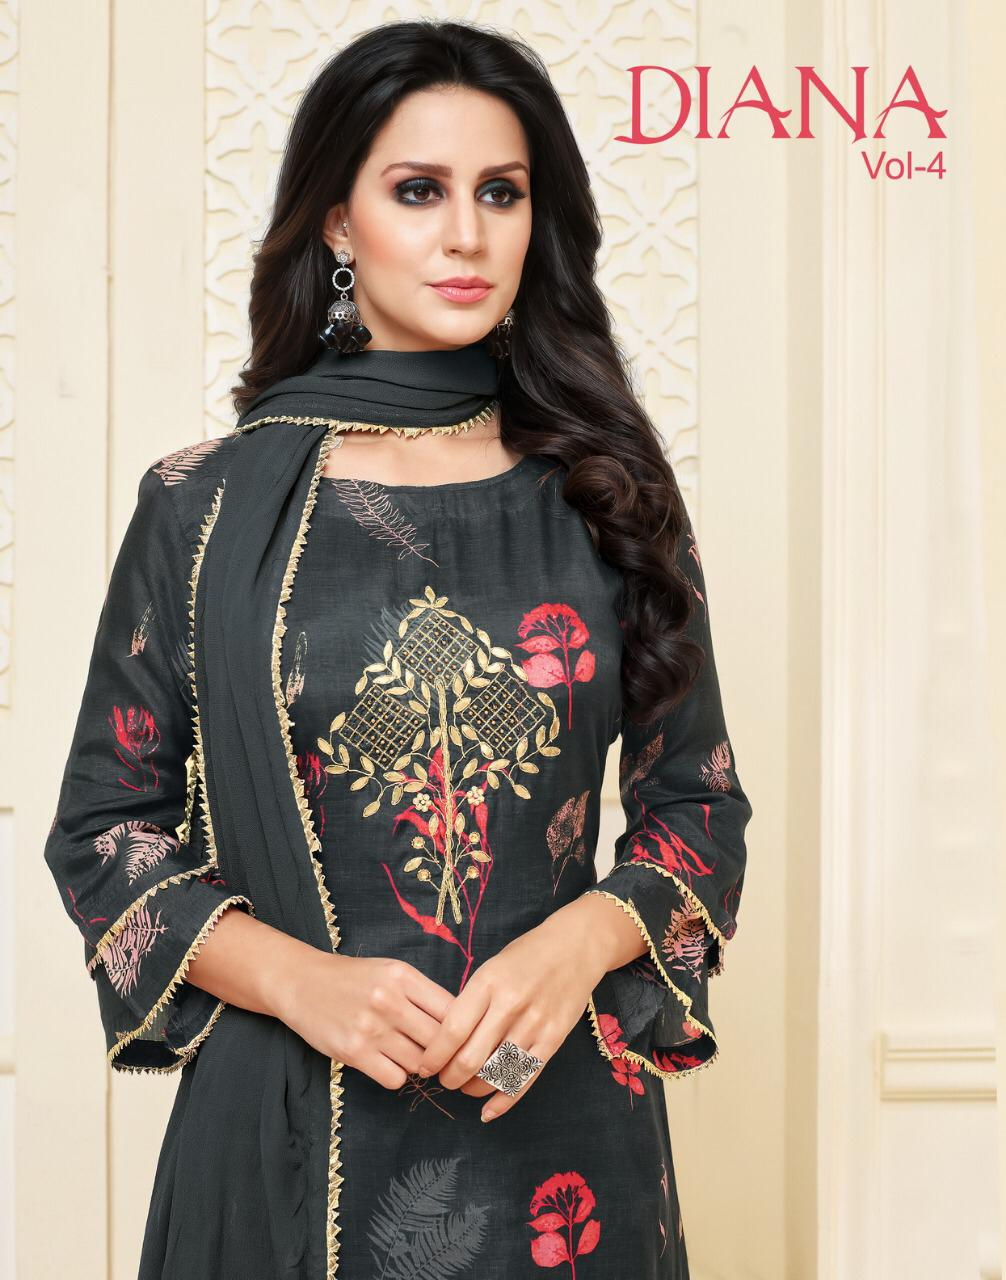 f5fe601ebe ANGROOP PLUS DIANA VOL 4 MASLIN SILK CASUAL WEAR DRESS COLLECTION ...